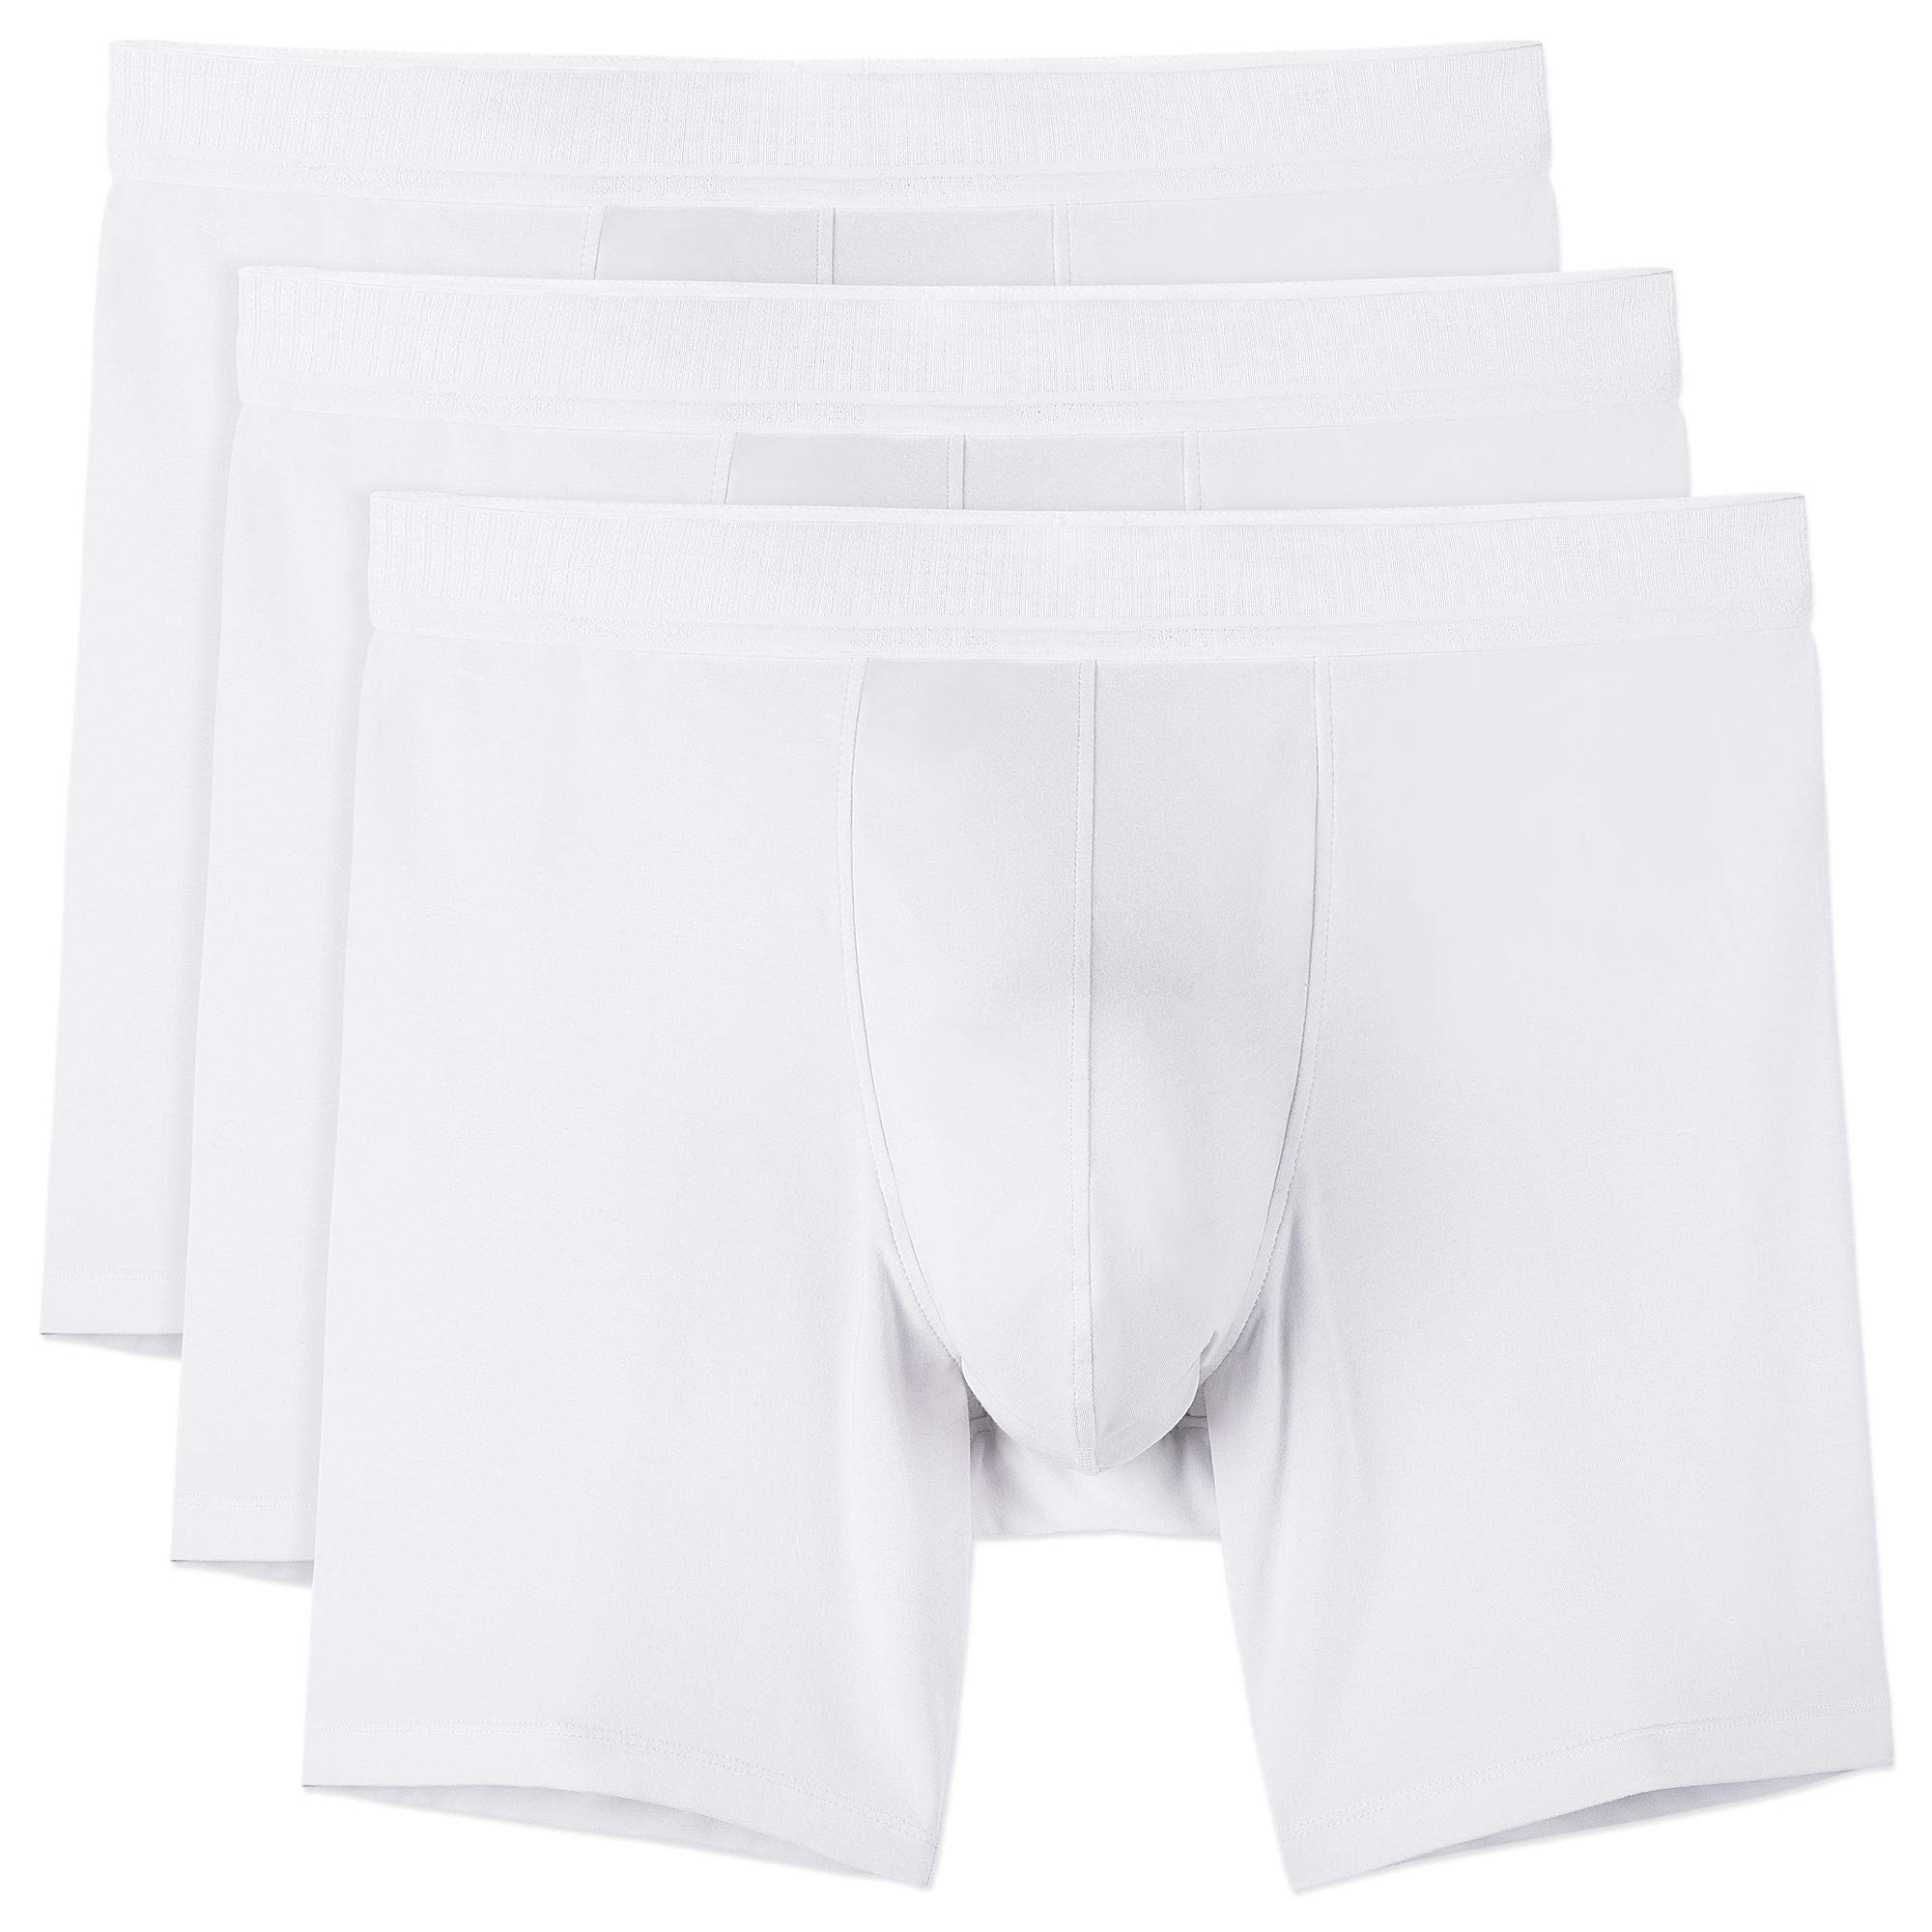 Separatec 7pack Multicolour for Everyday Mens Boxer Briefs Breathable Soft Cotton Underwear Shorts with Supportive Separated Dual Pouch